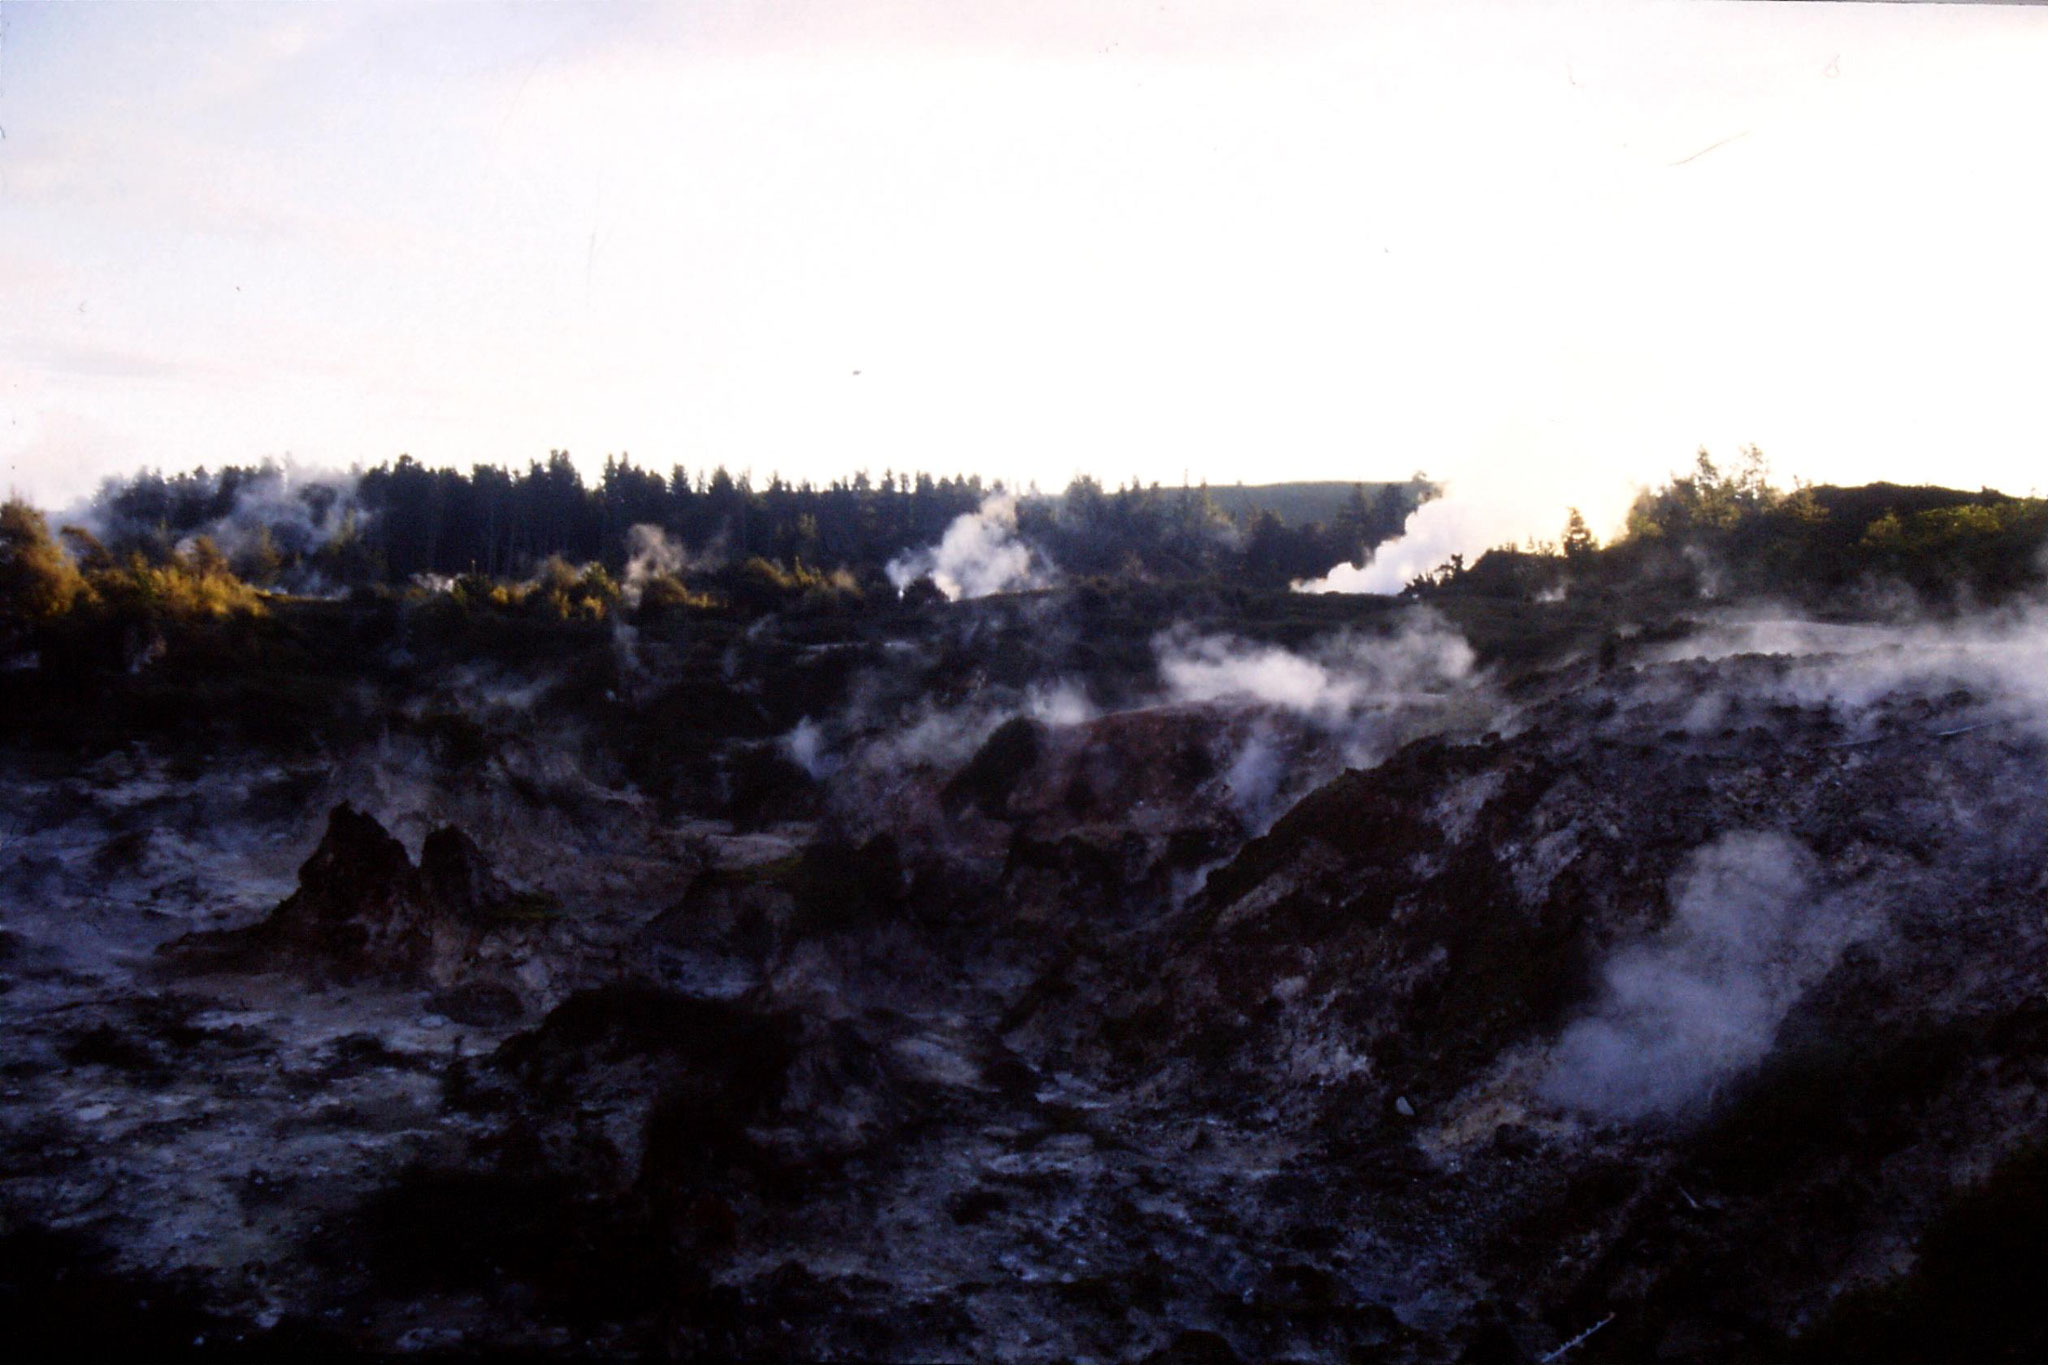 30/8/1990: 18: Craters of the Moon north of Taupo